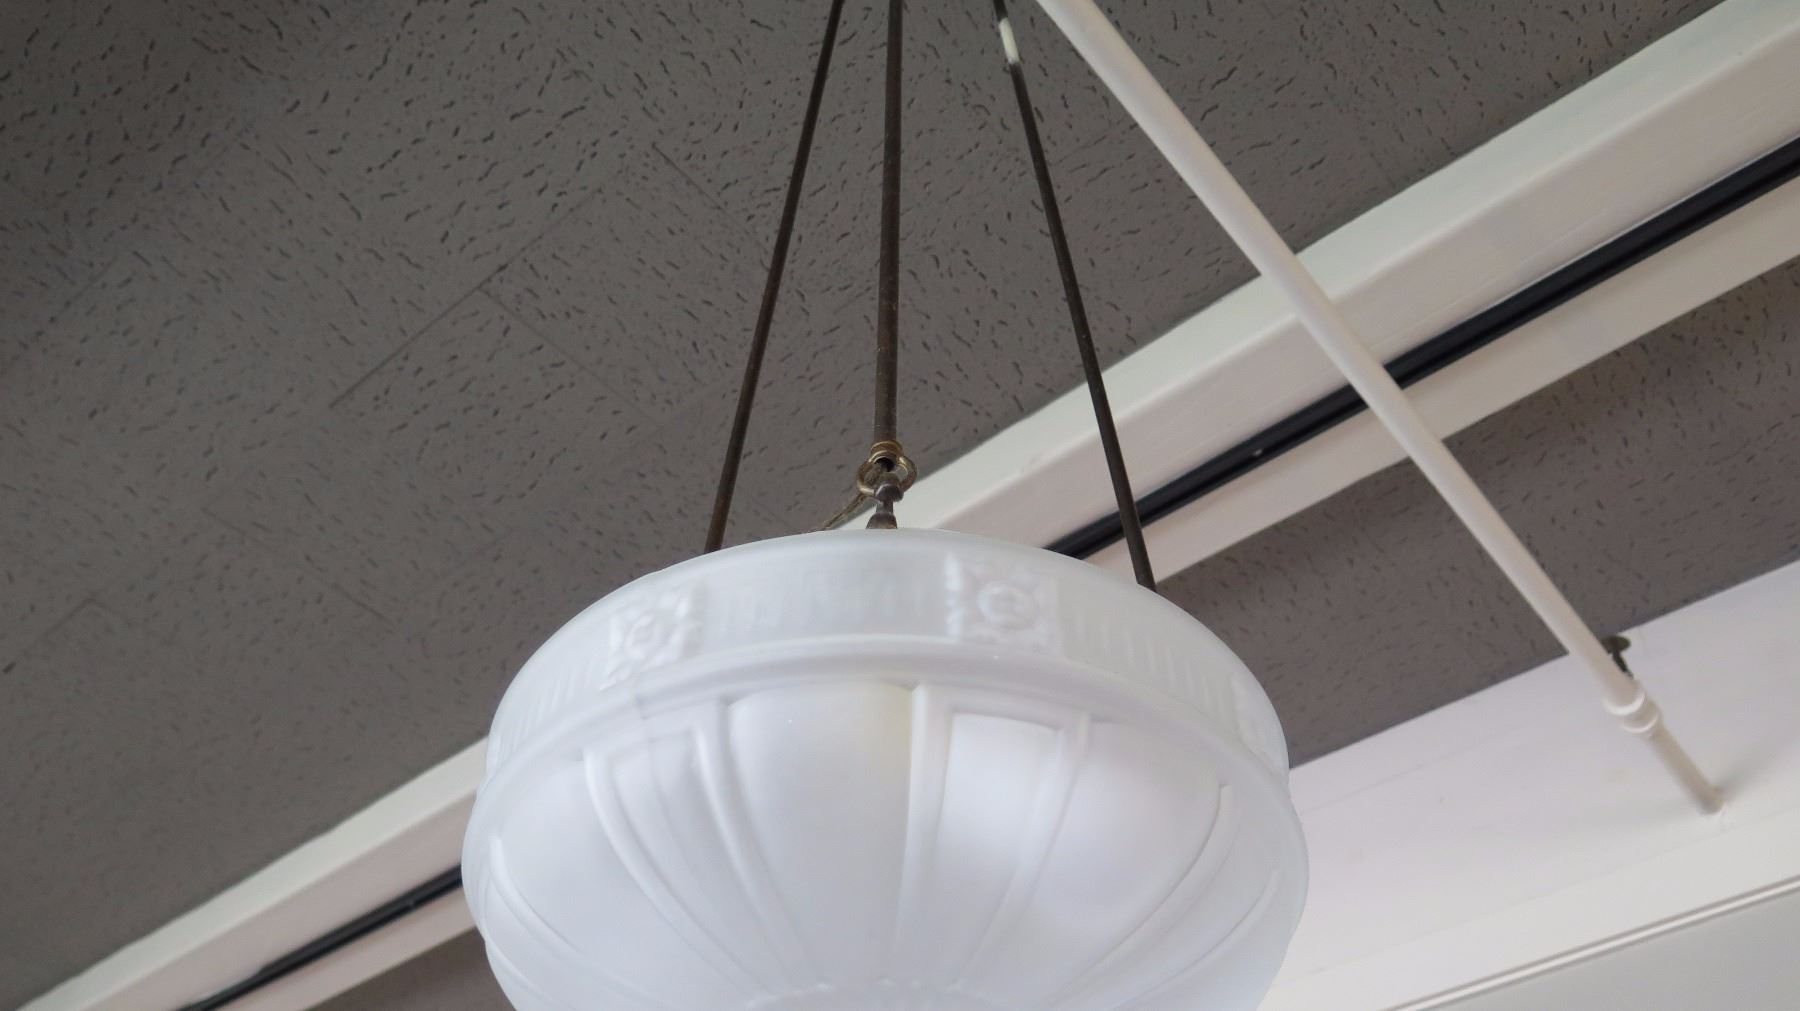 Hanging Ceiling Light Fixture w/Frosted Glass Dome (already removed ...